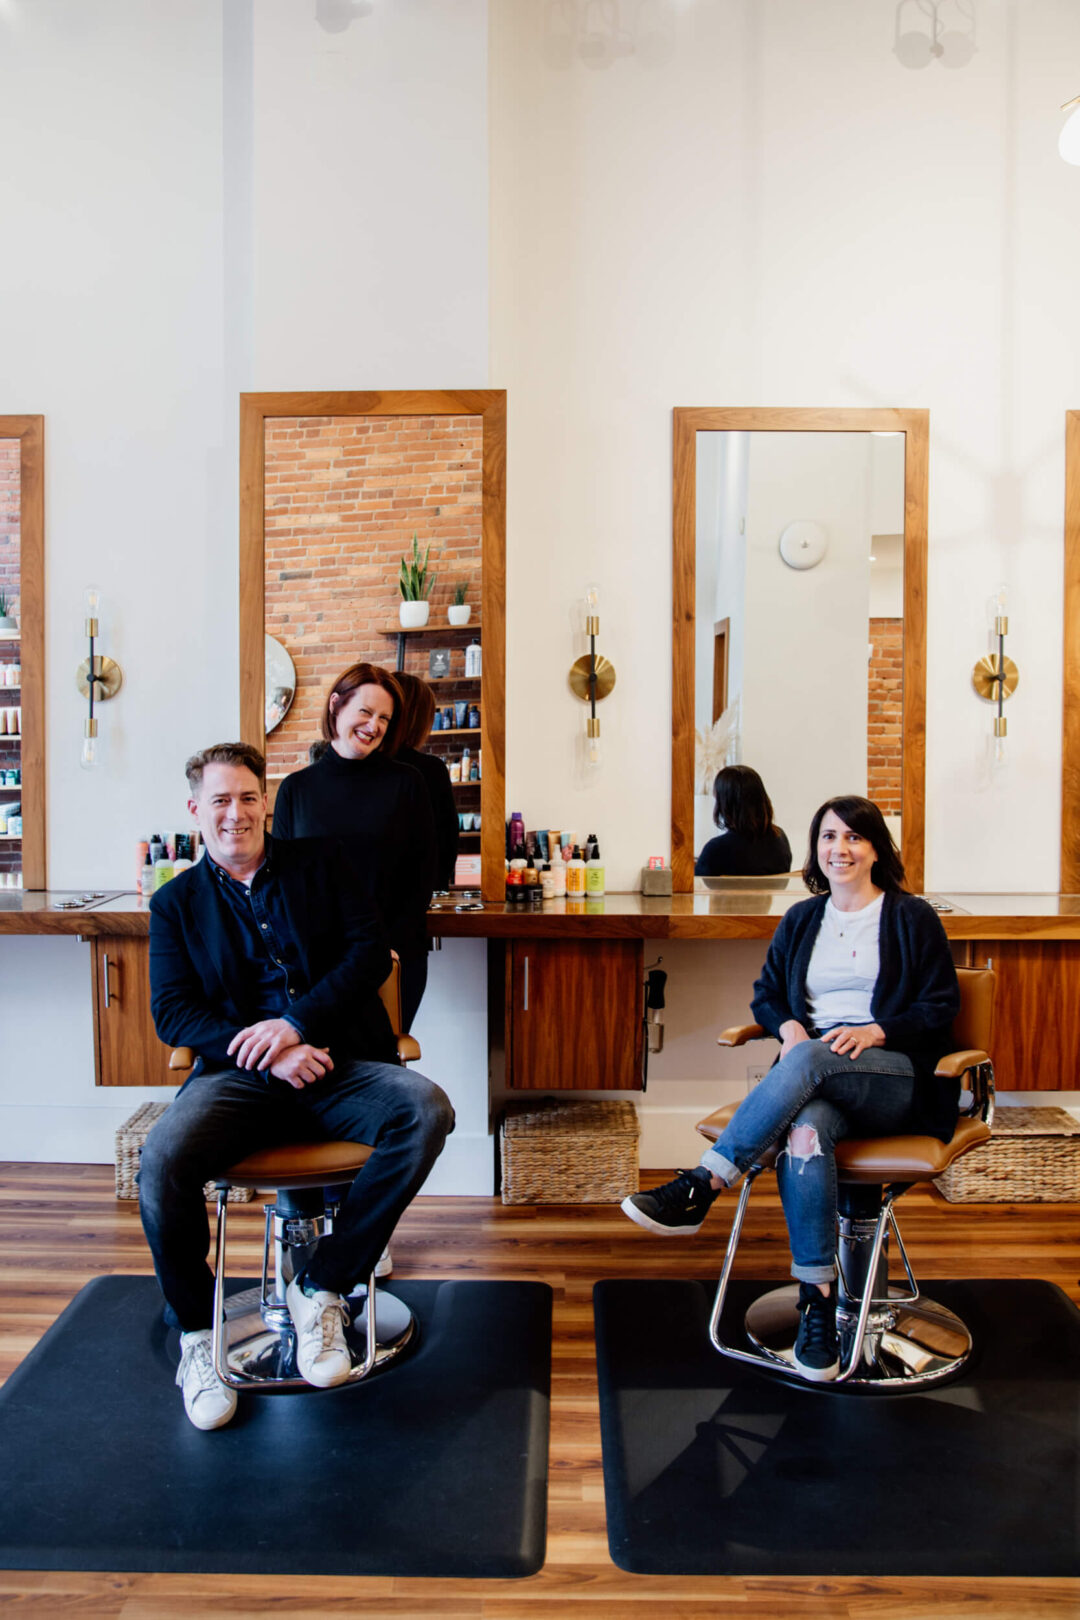 Three salon owners smile at camera while sitting on chairs.